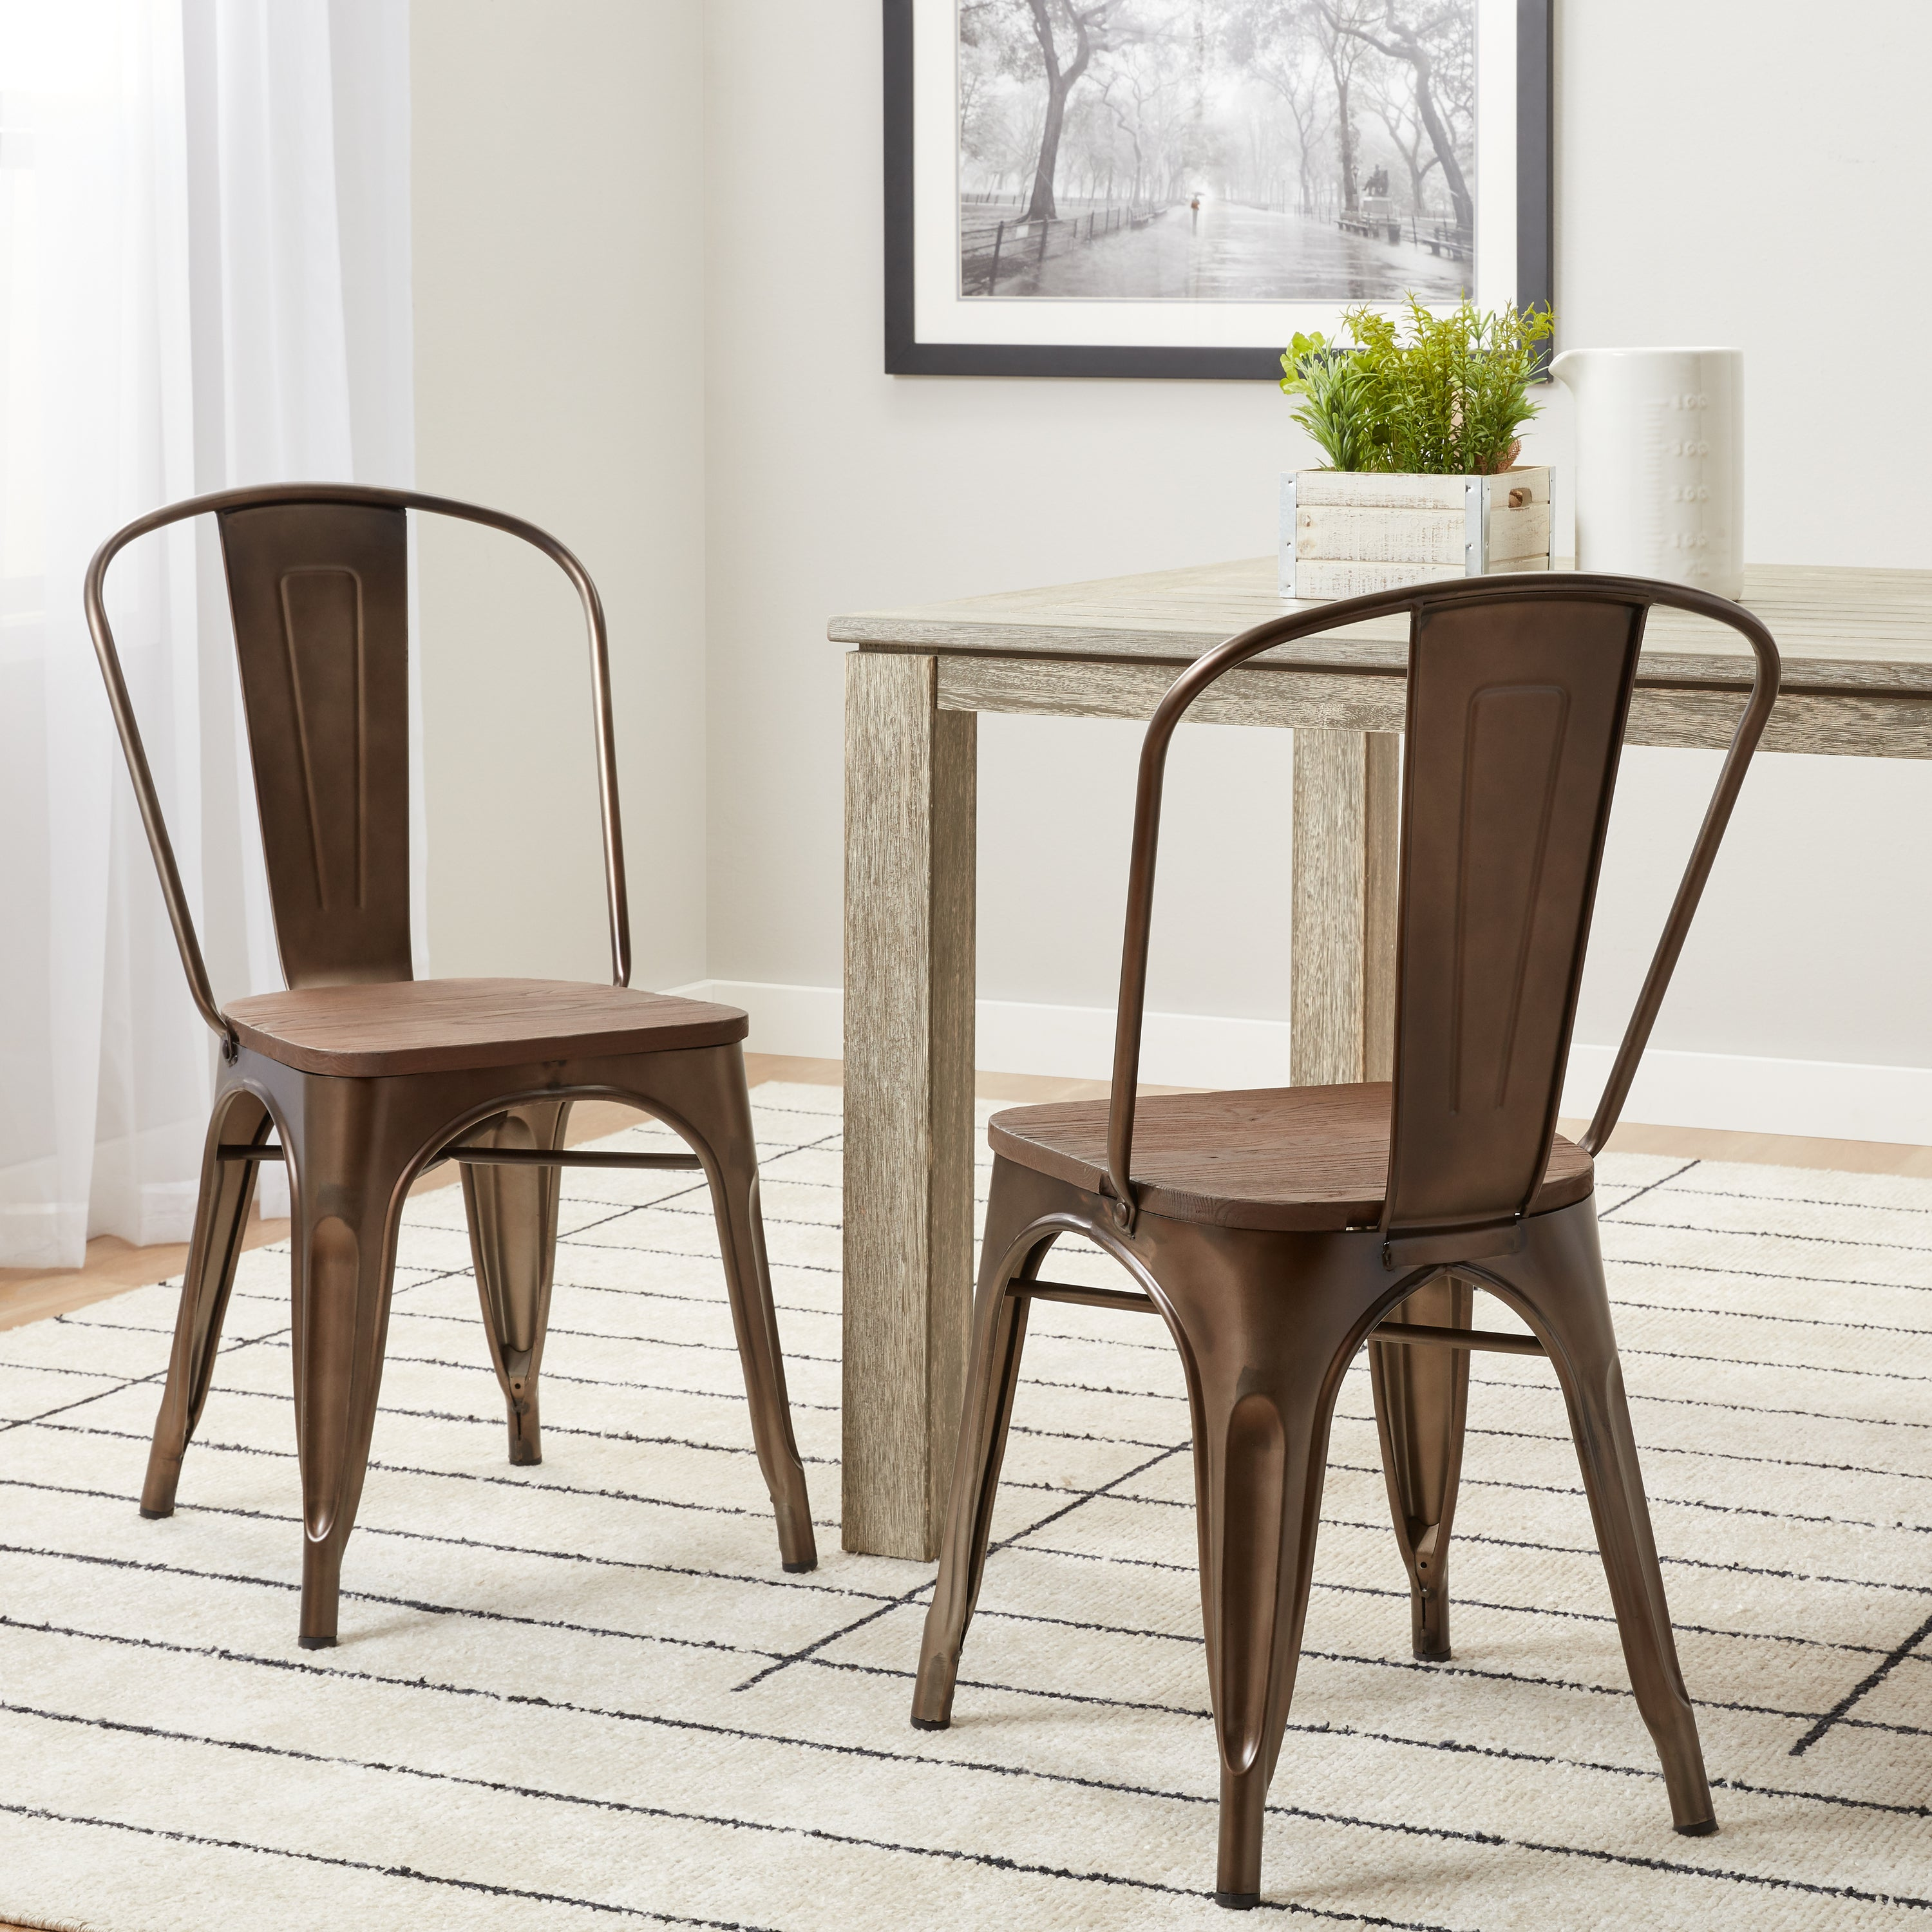 Lovely Carbon Loft Tabouret Vintage Wood Seat Bistro Chair   Free Shipping Today    Overstock   16190403